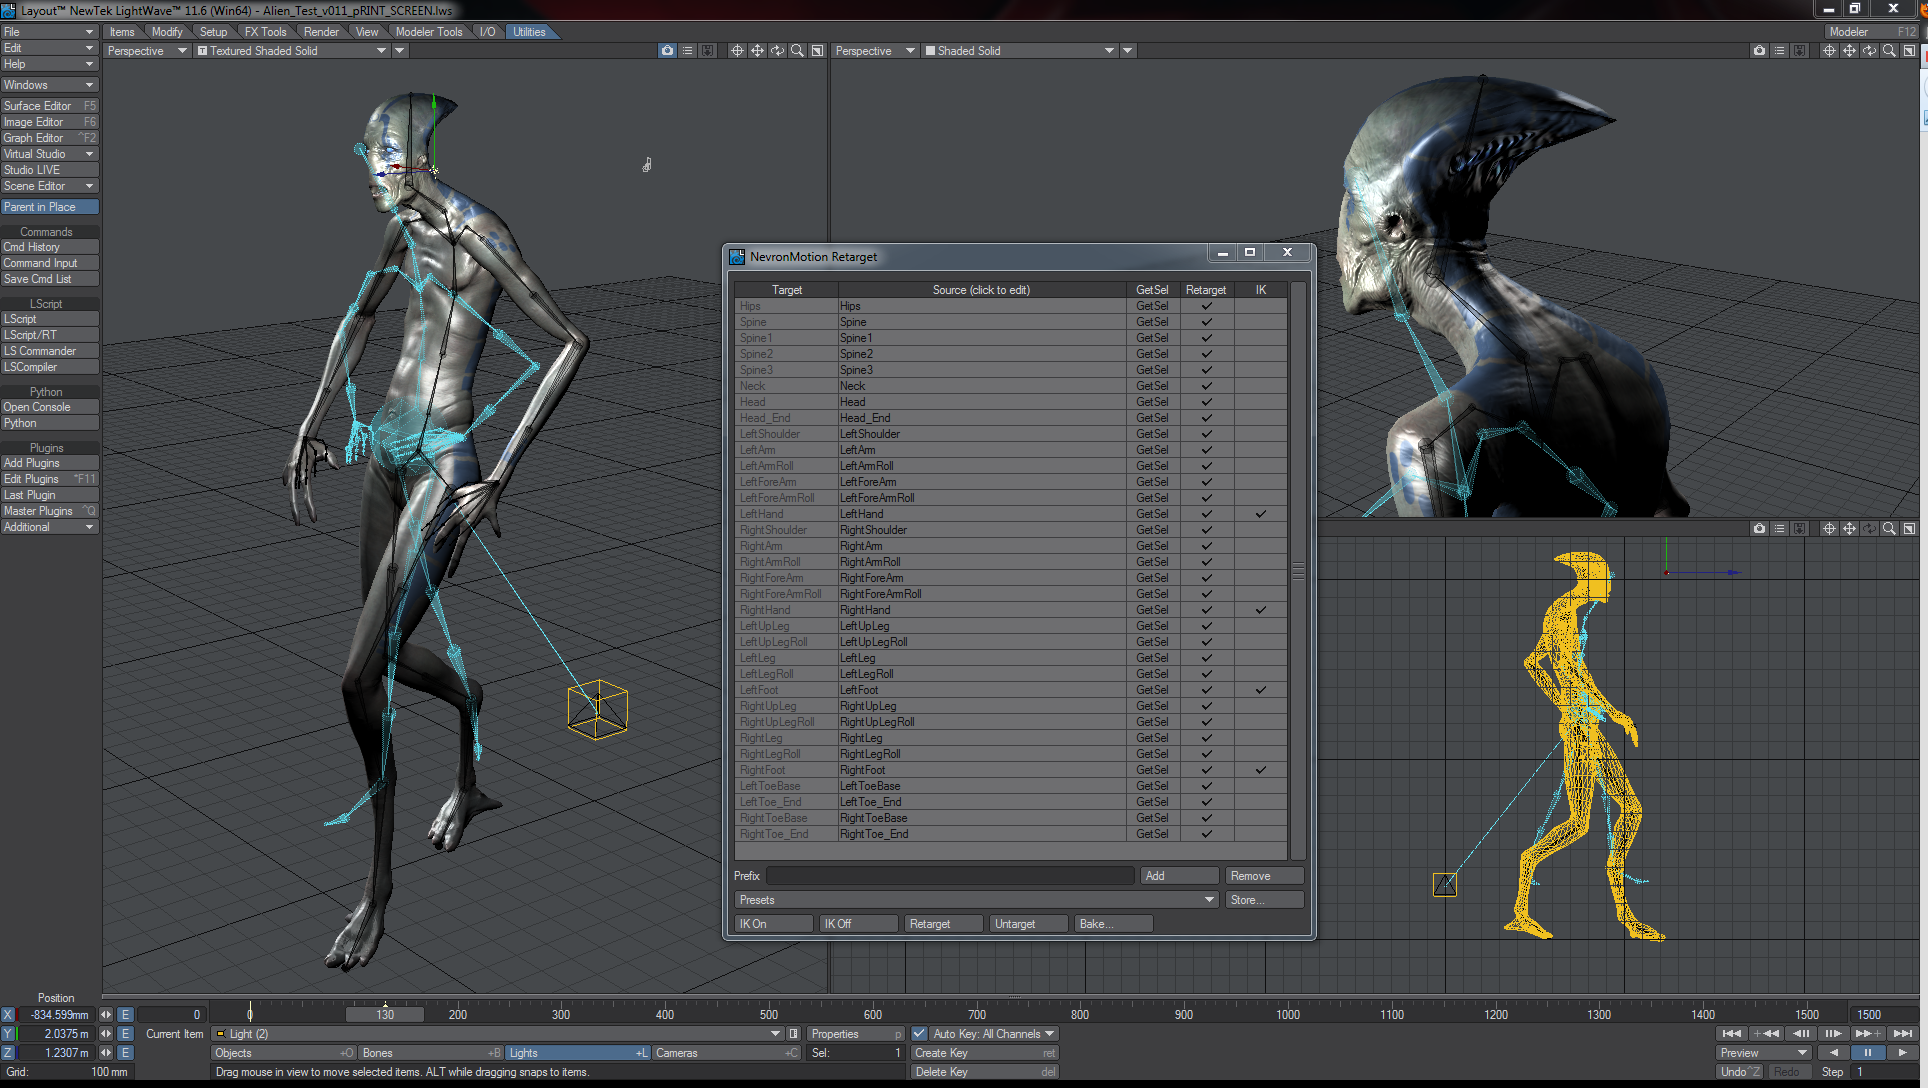 LightWave - NevronMotion Transforms Mocap in LightWave 116